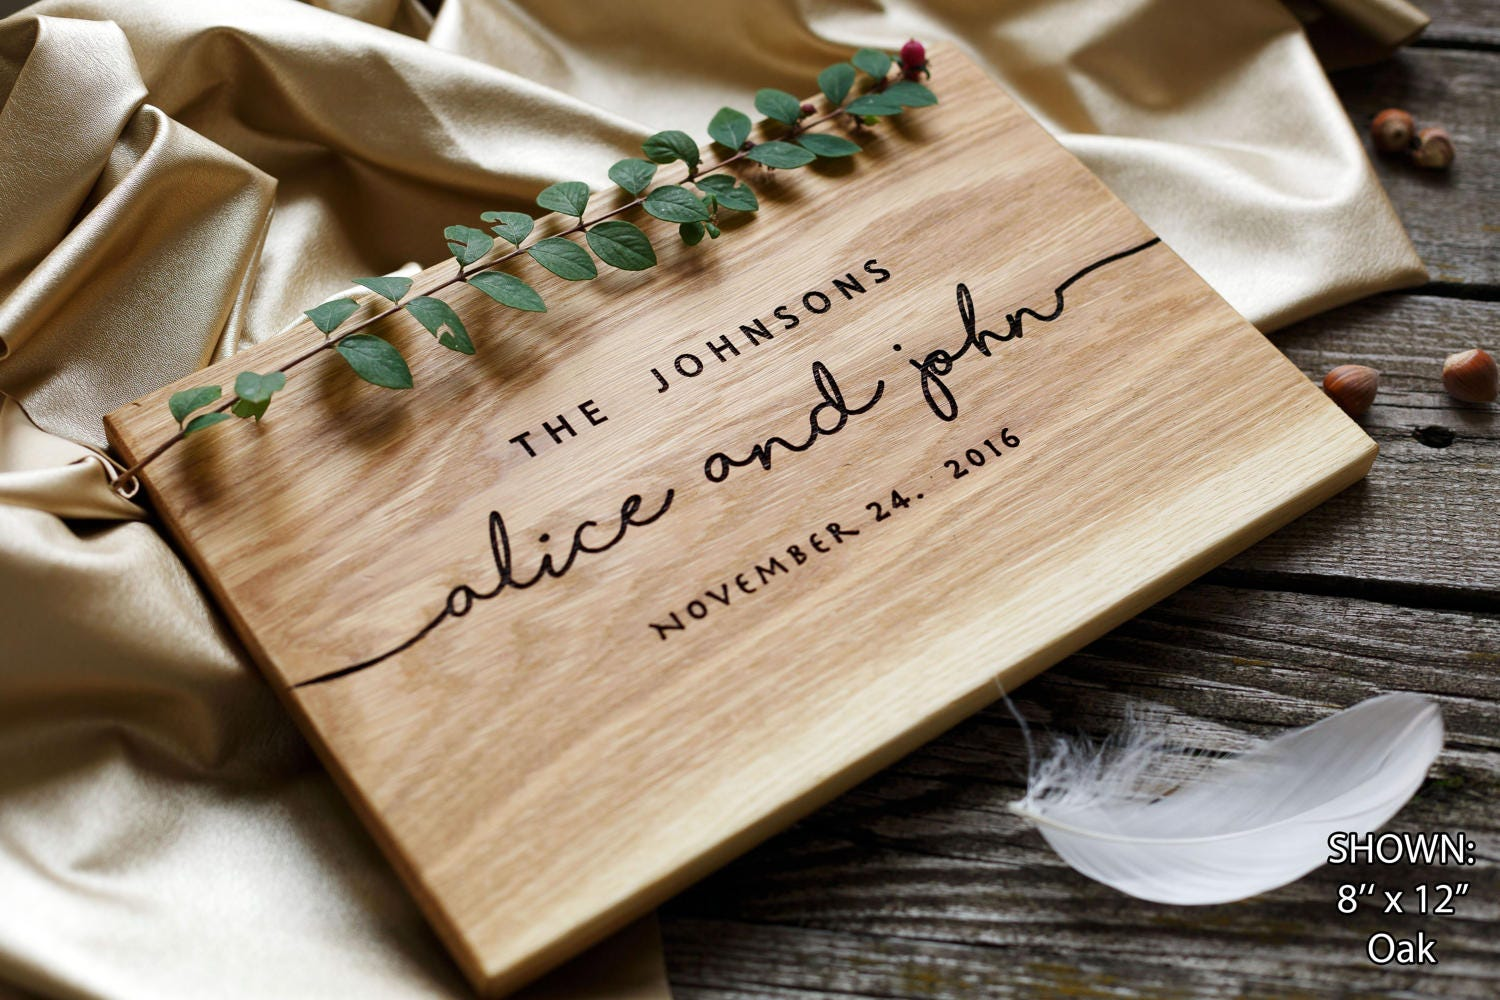 Personalized Wedding Gifts For Couples: Wedding Gift Personalized Cutting Board Gift For Couple Unique